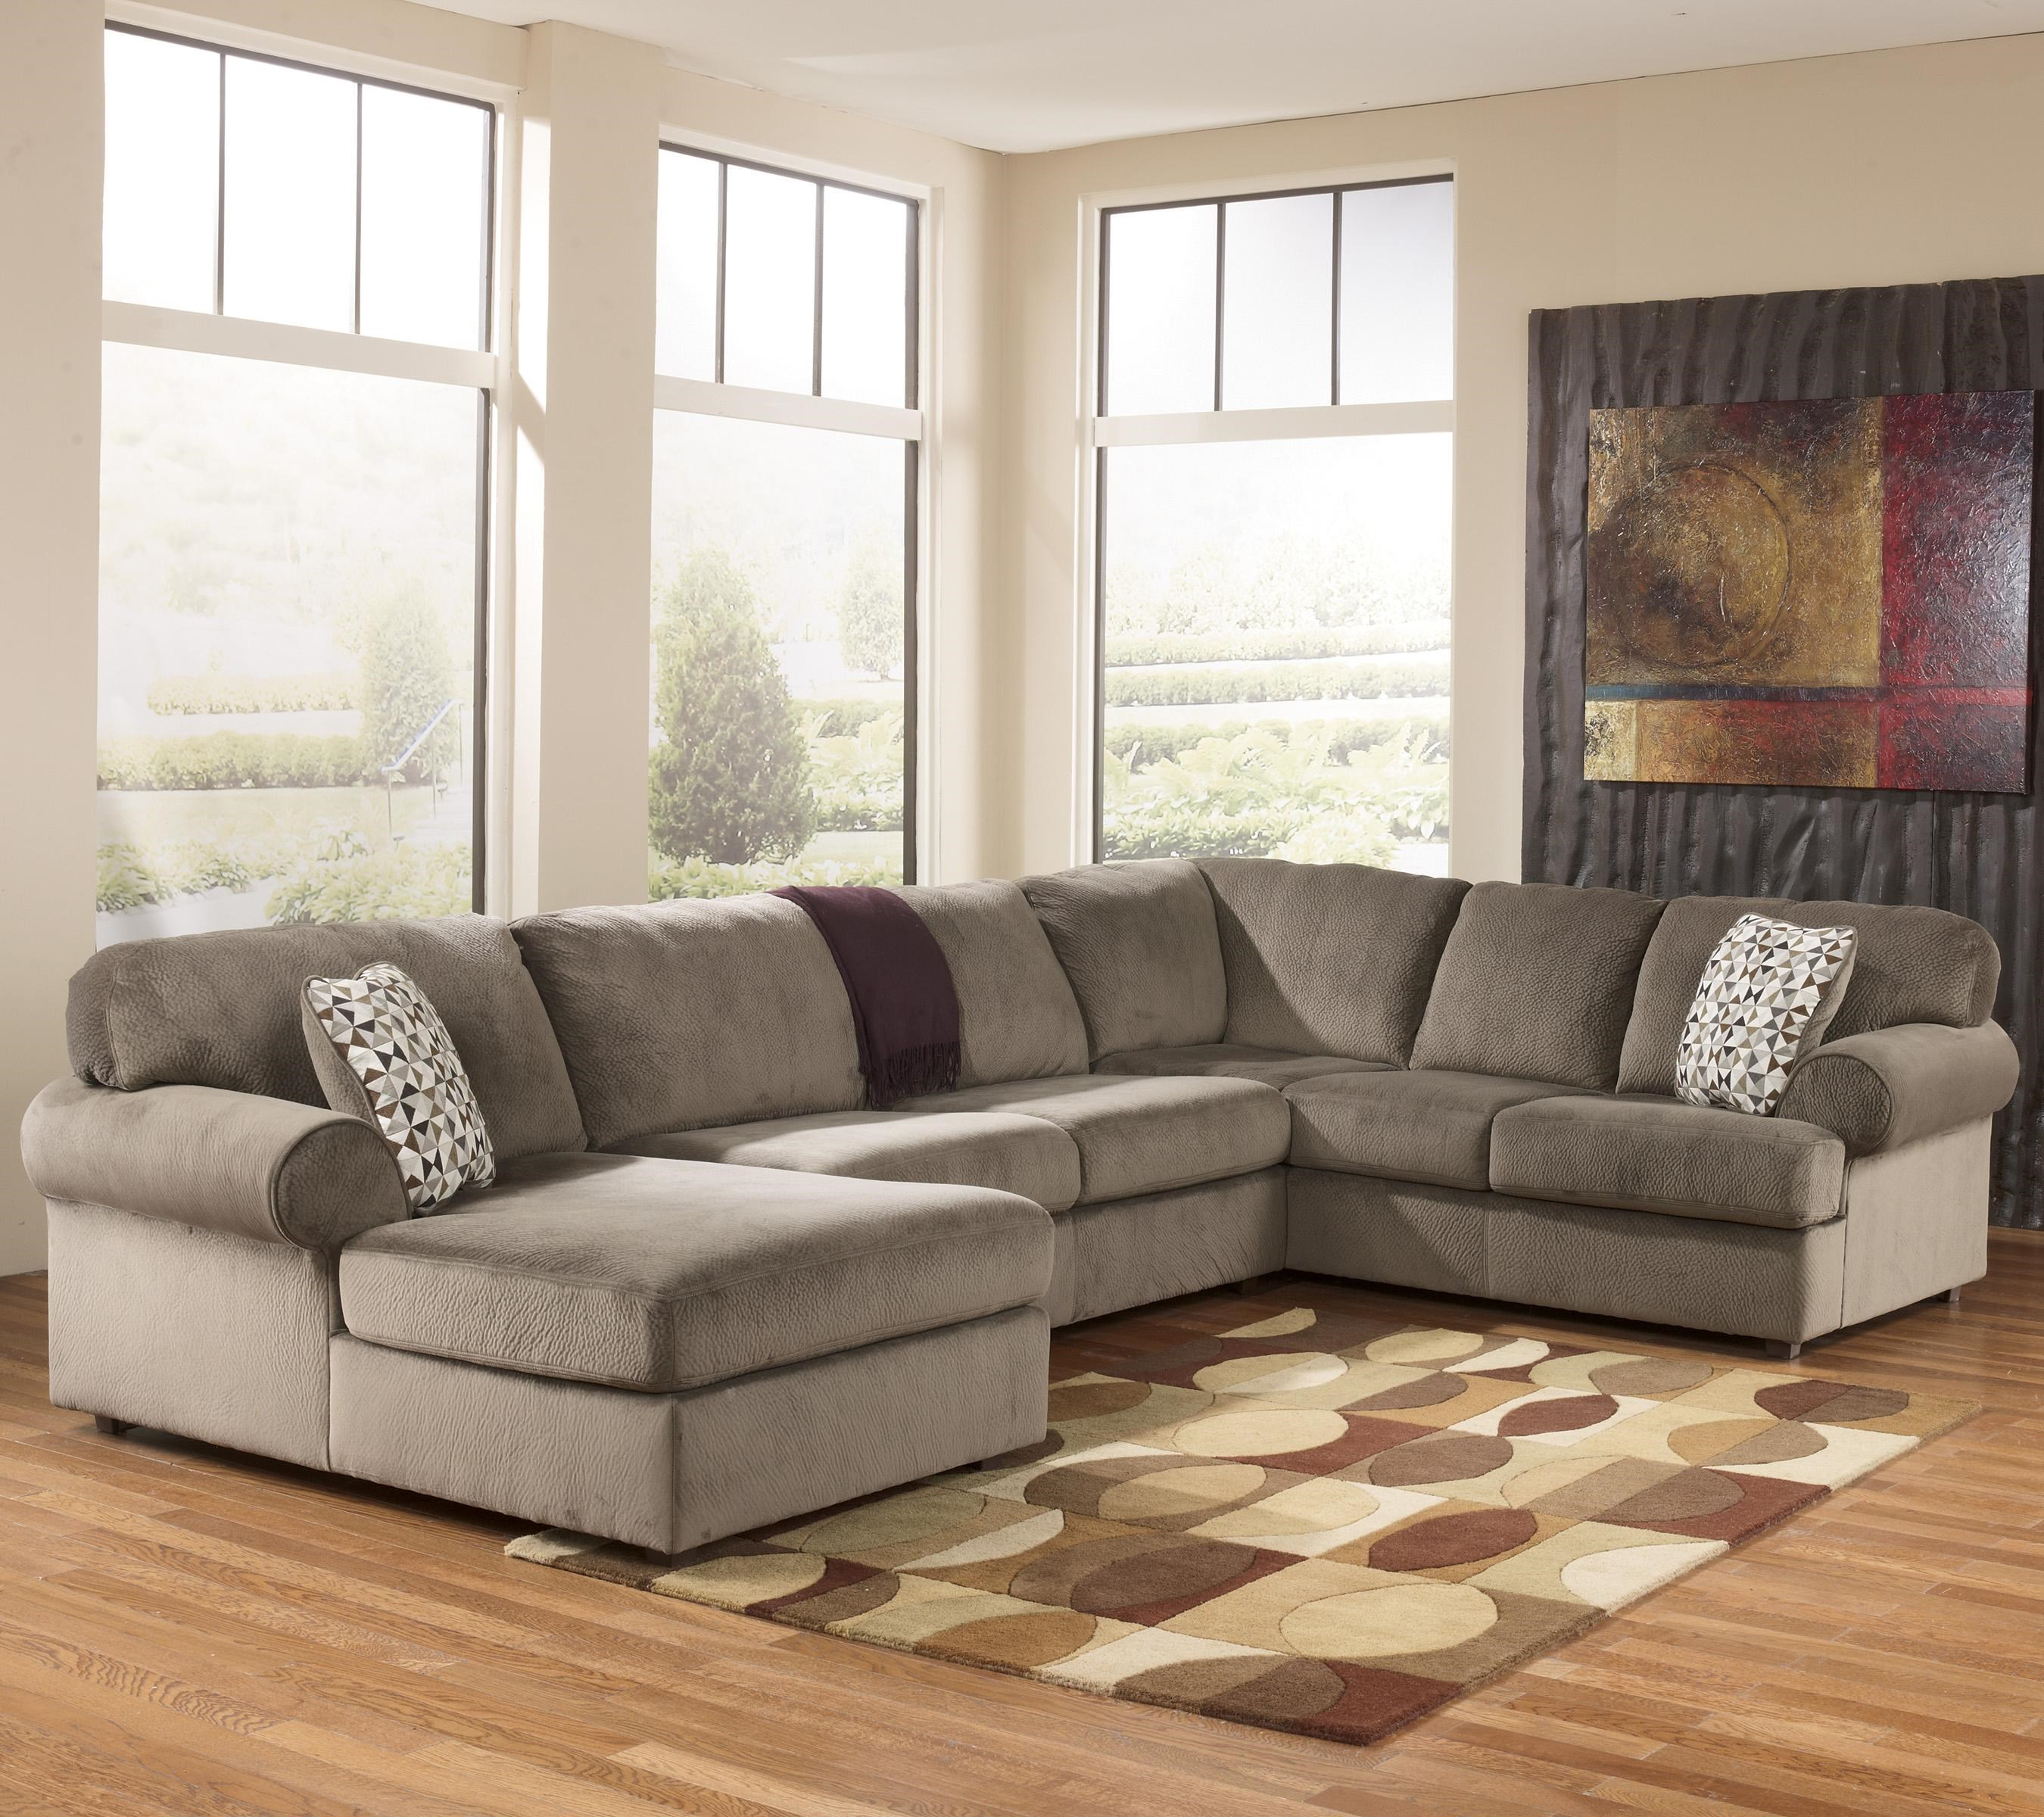 Charming Signature Design By Ashley Jessa Place   Dune Casual Sectional Sofa With  Left Chaise